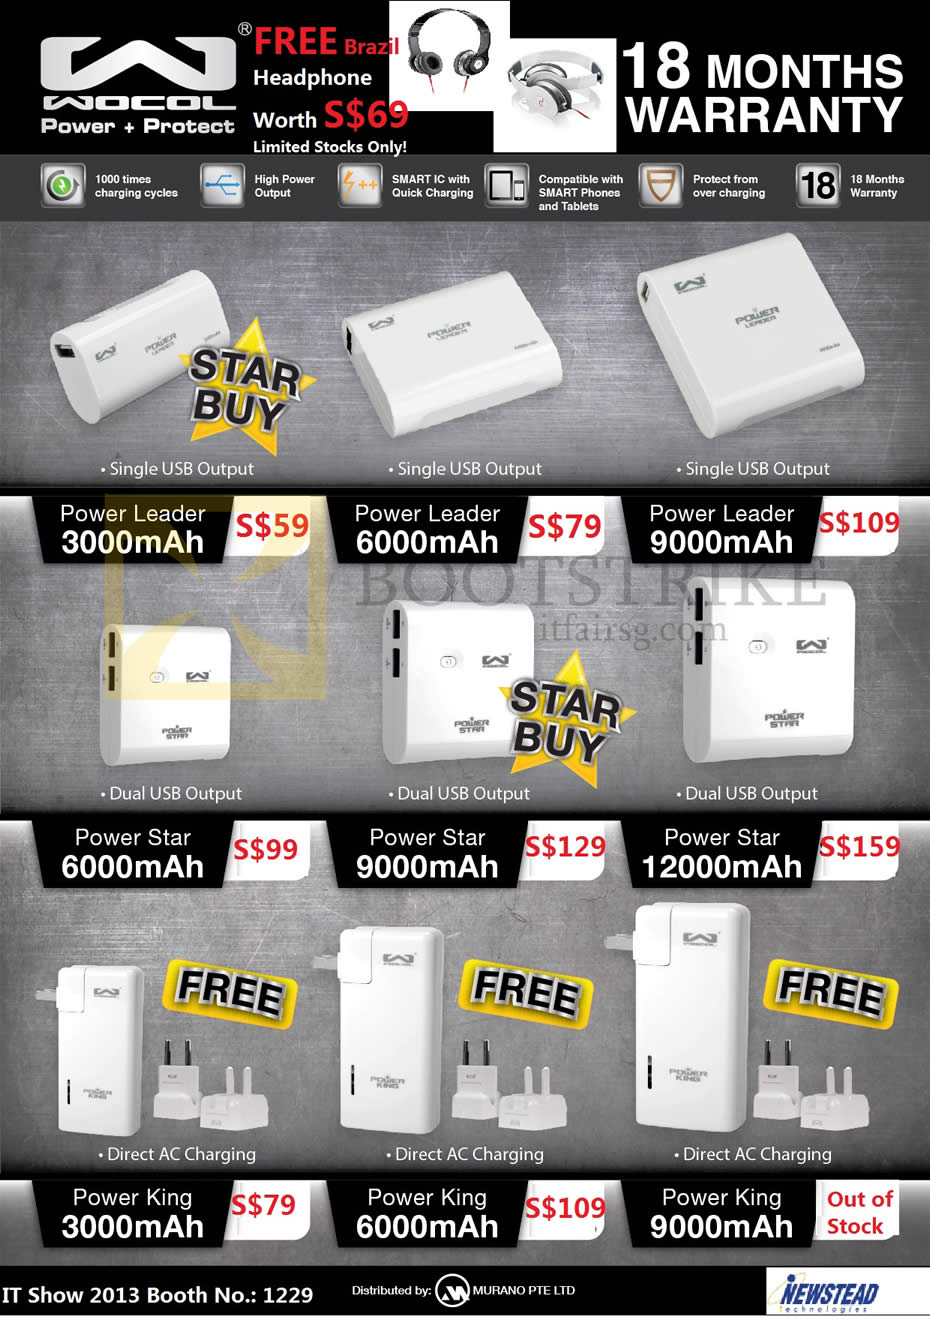 IT SHOW 2013 price list image brochure of Newstead Murano Wocol Portable Chargers Power Leader, Power Star, Power King